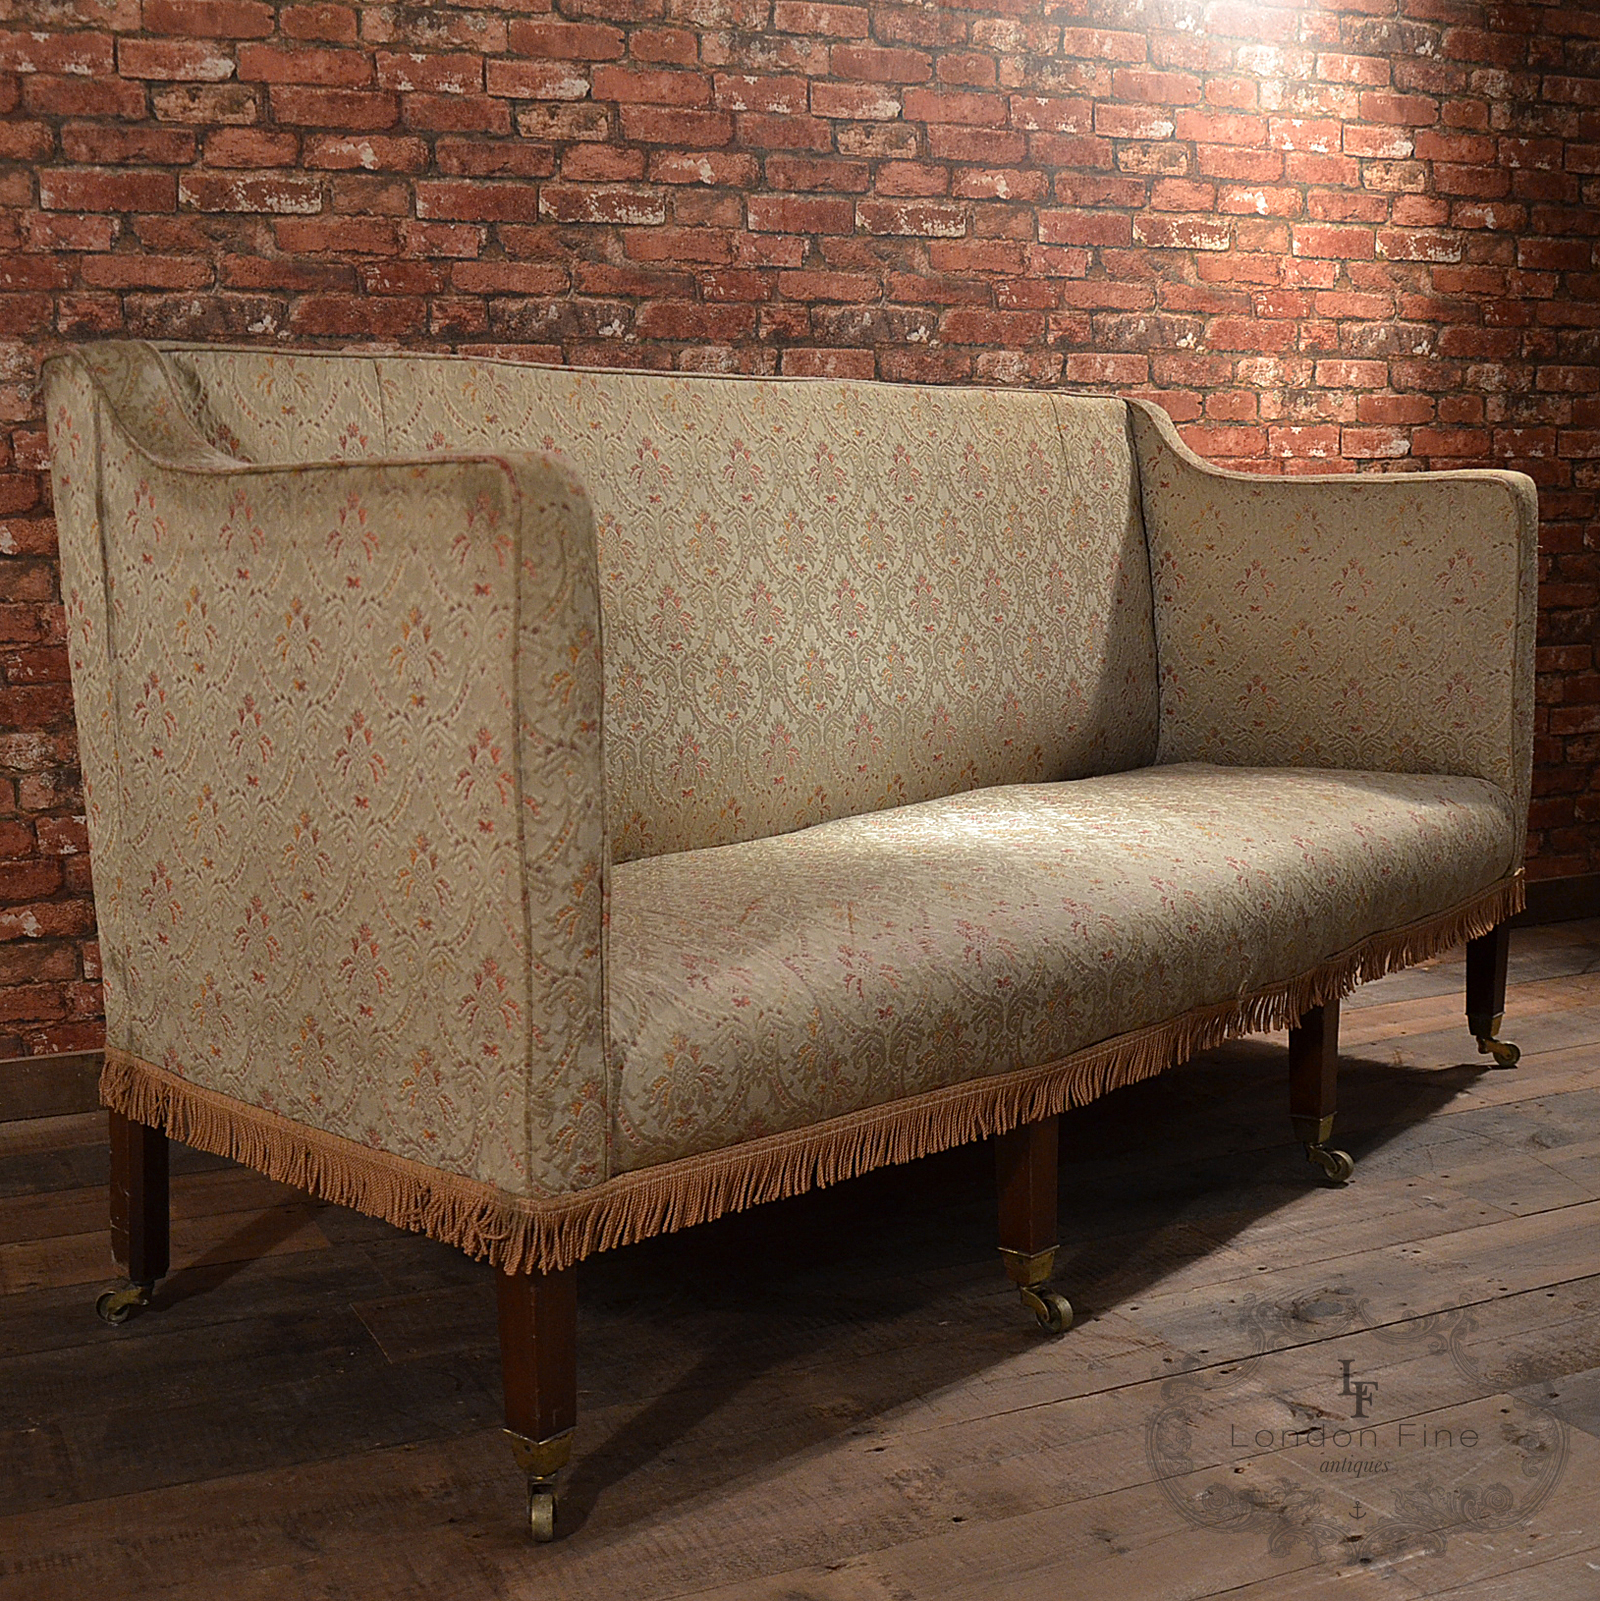 High Back Antique Sofa Antique Georgian High Back Sofa English C 1800 3 Or 4 Seater For